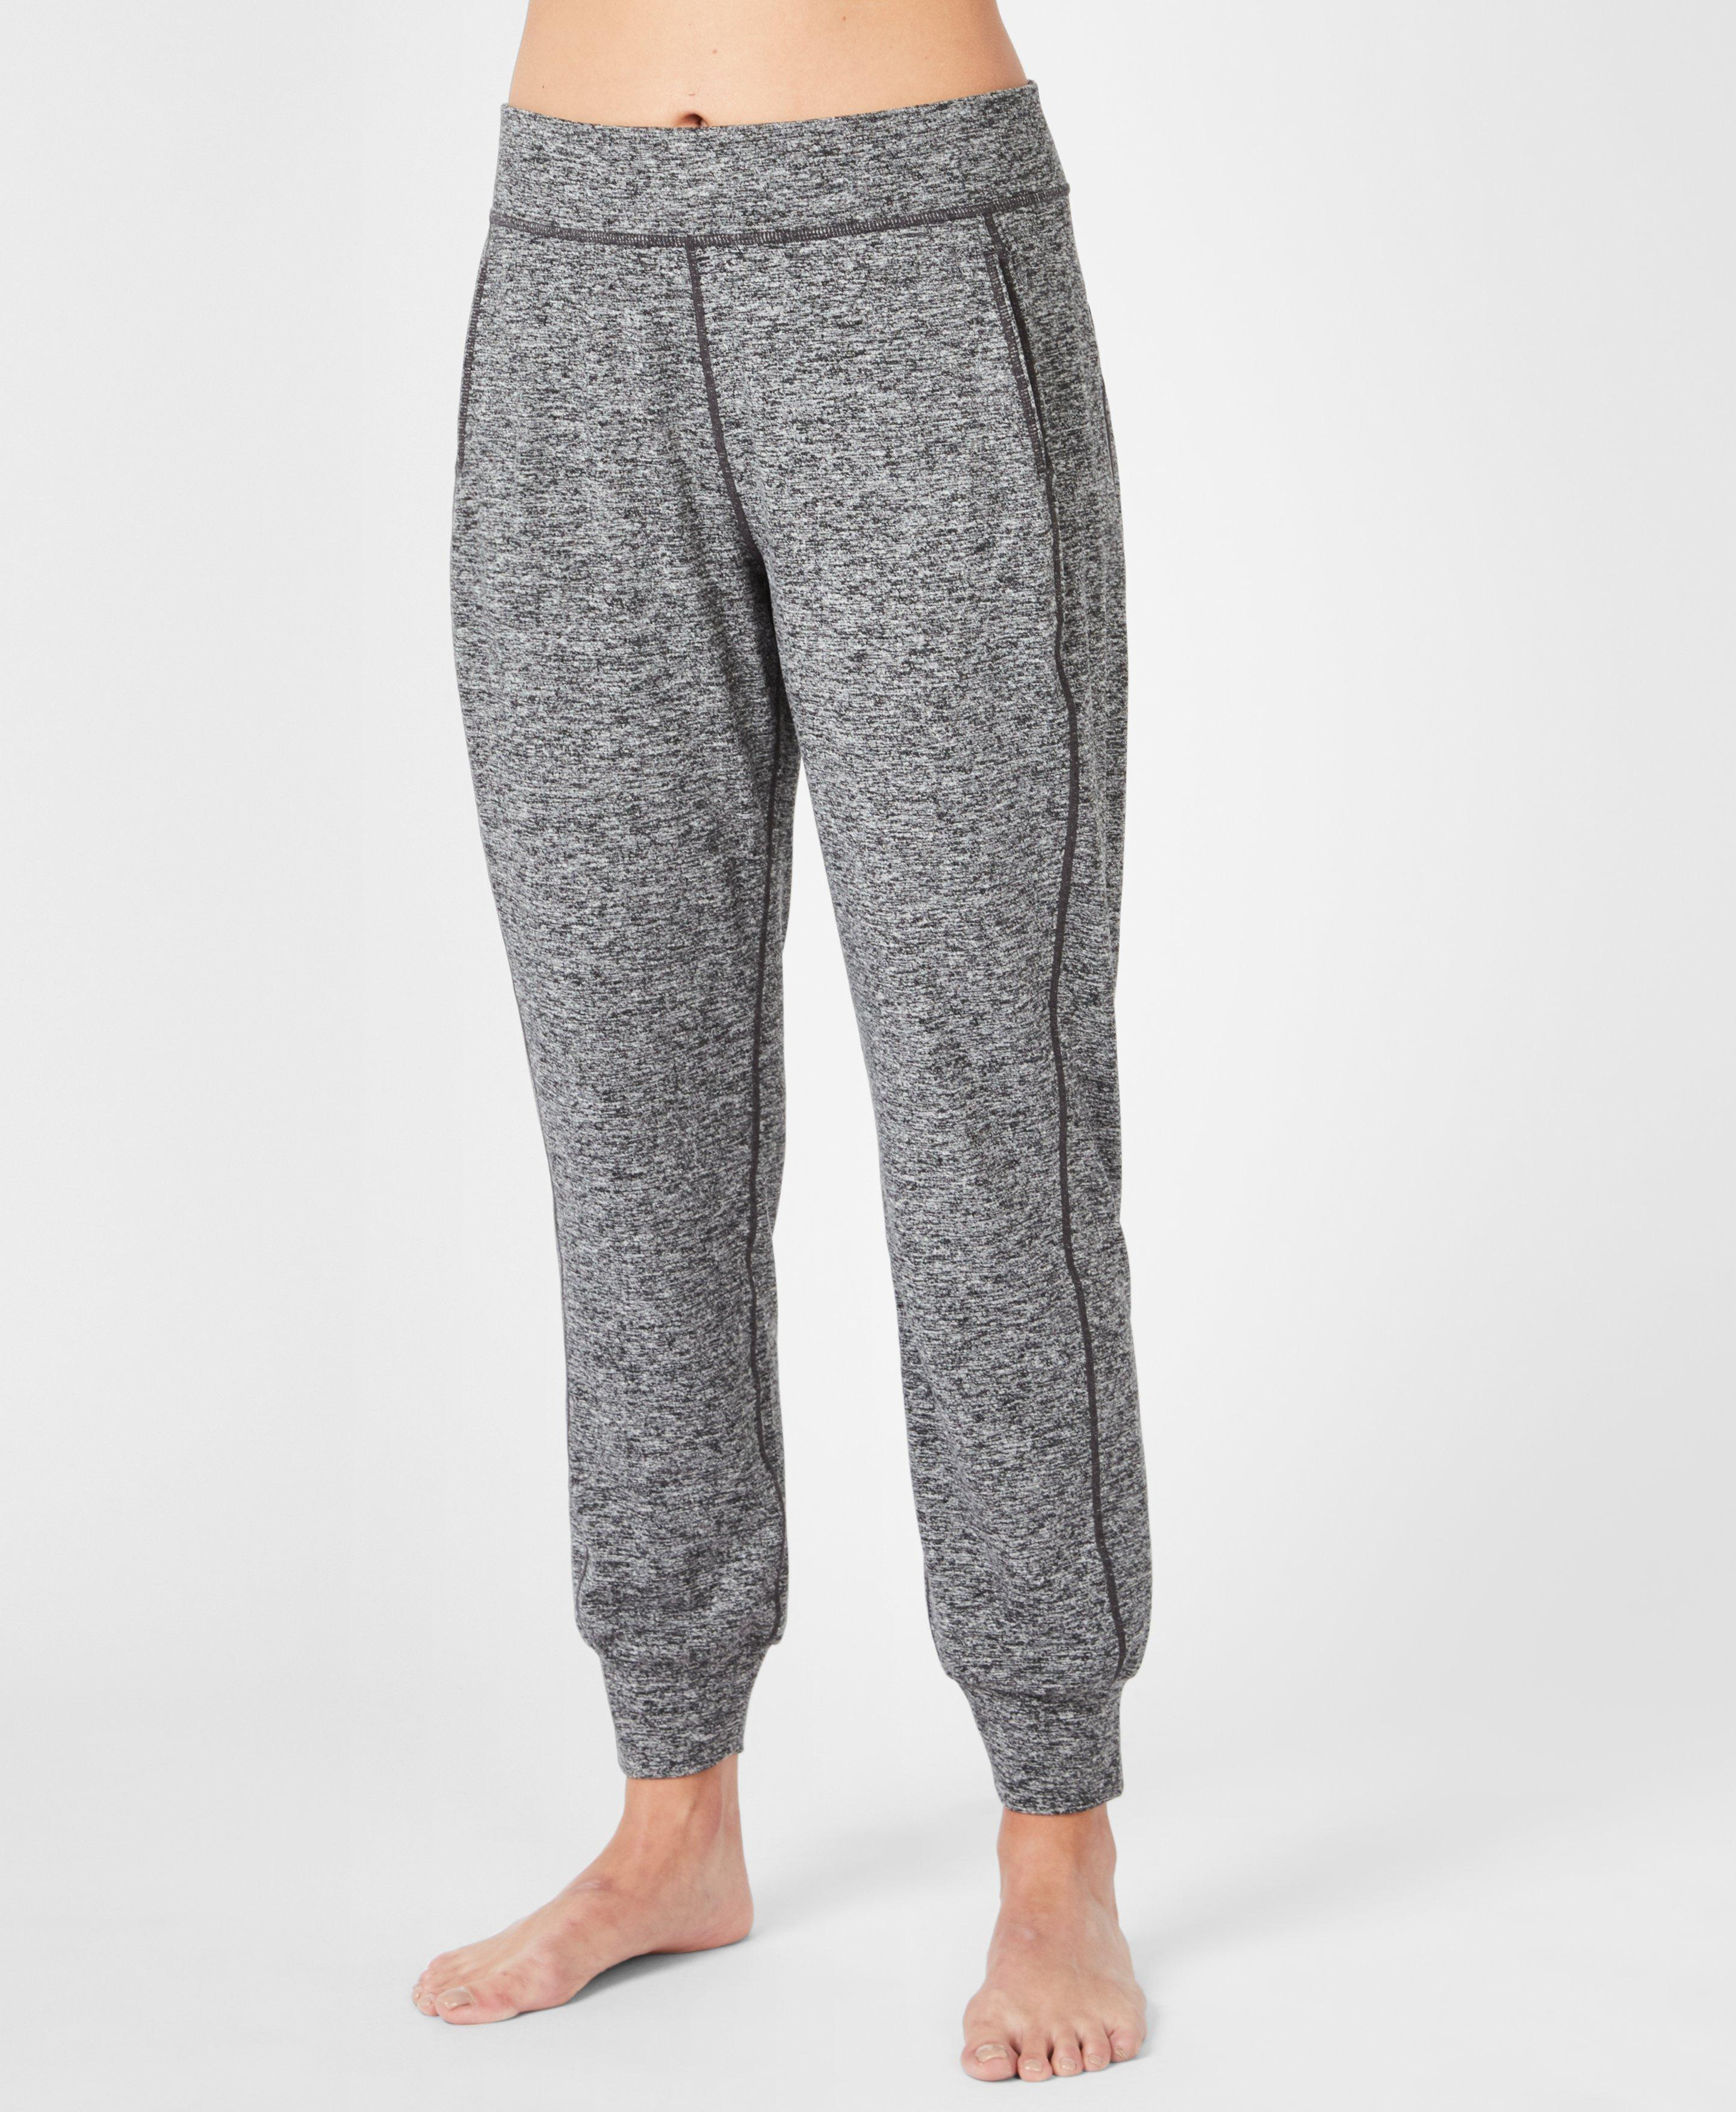 Introducing the softest yoga pants ever. You love them, we are obsessed with the relaxed fit and stretchy fabric. Wear on the mat, for travel or as a comfortable sweat pant.